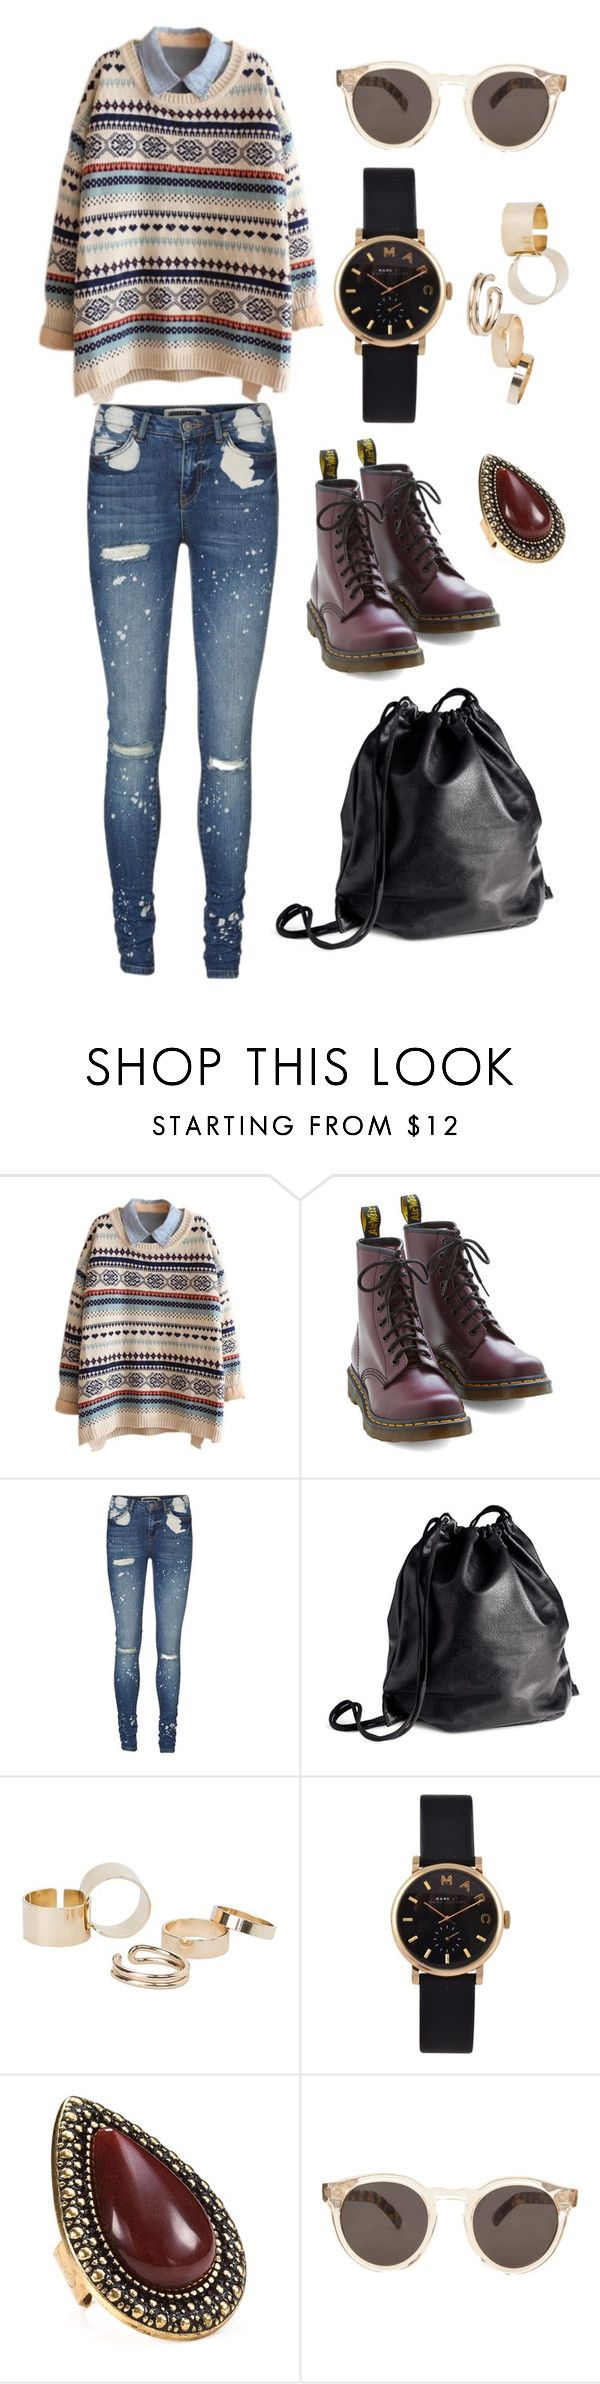 """""""Geek mode on"""" by liquidvisions ❤ liked on Polyvore featuring Dr. Martens, Vero Moda, H&M, MANGO, Marc by Marc Jacobs, Samantha Wills and Illesteva"""